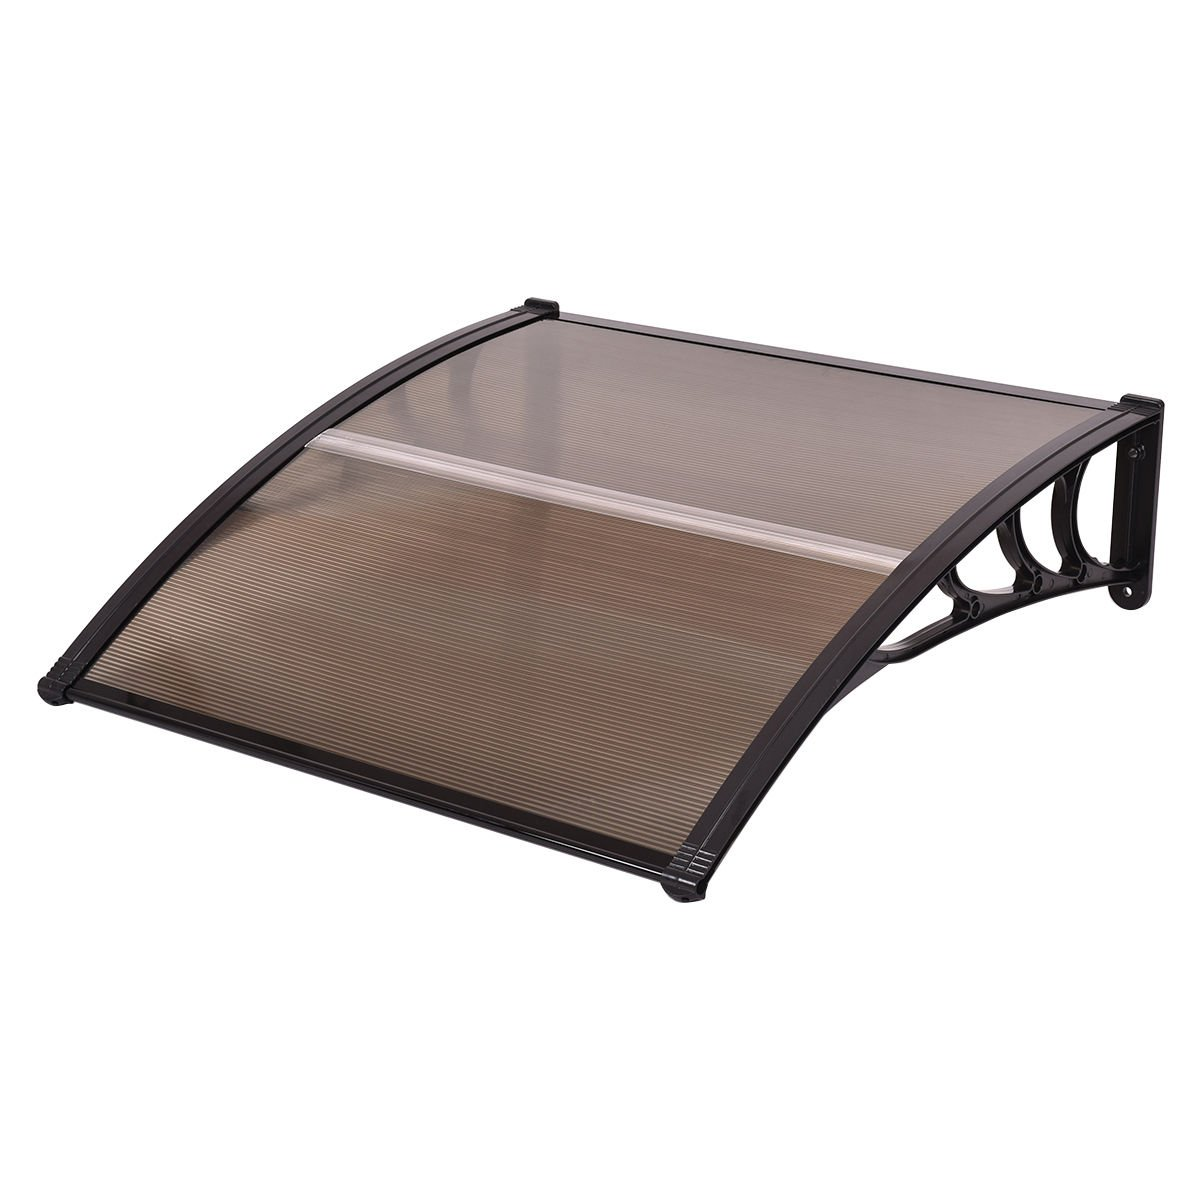 Tangkula 40''x 40'' Window Awning Modern Polycarbonate Cover Front Door Outdoor Patio Canopy Sun shetter 3 Colors (Brown with Black Edge)